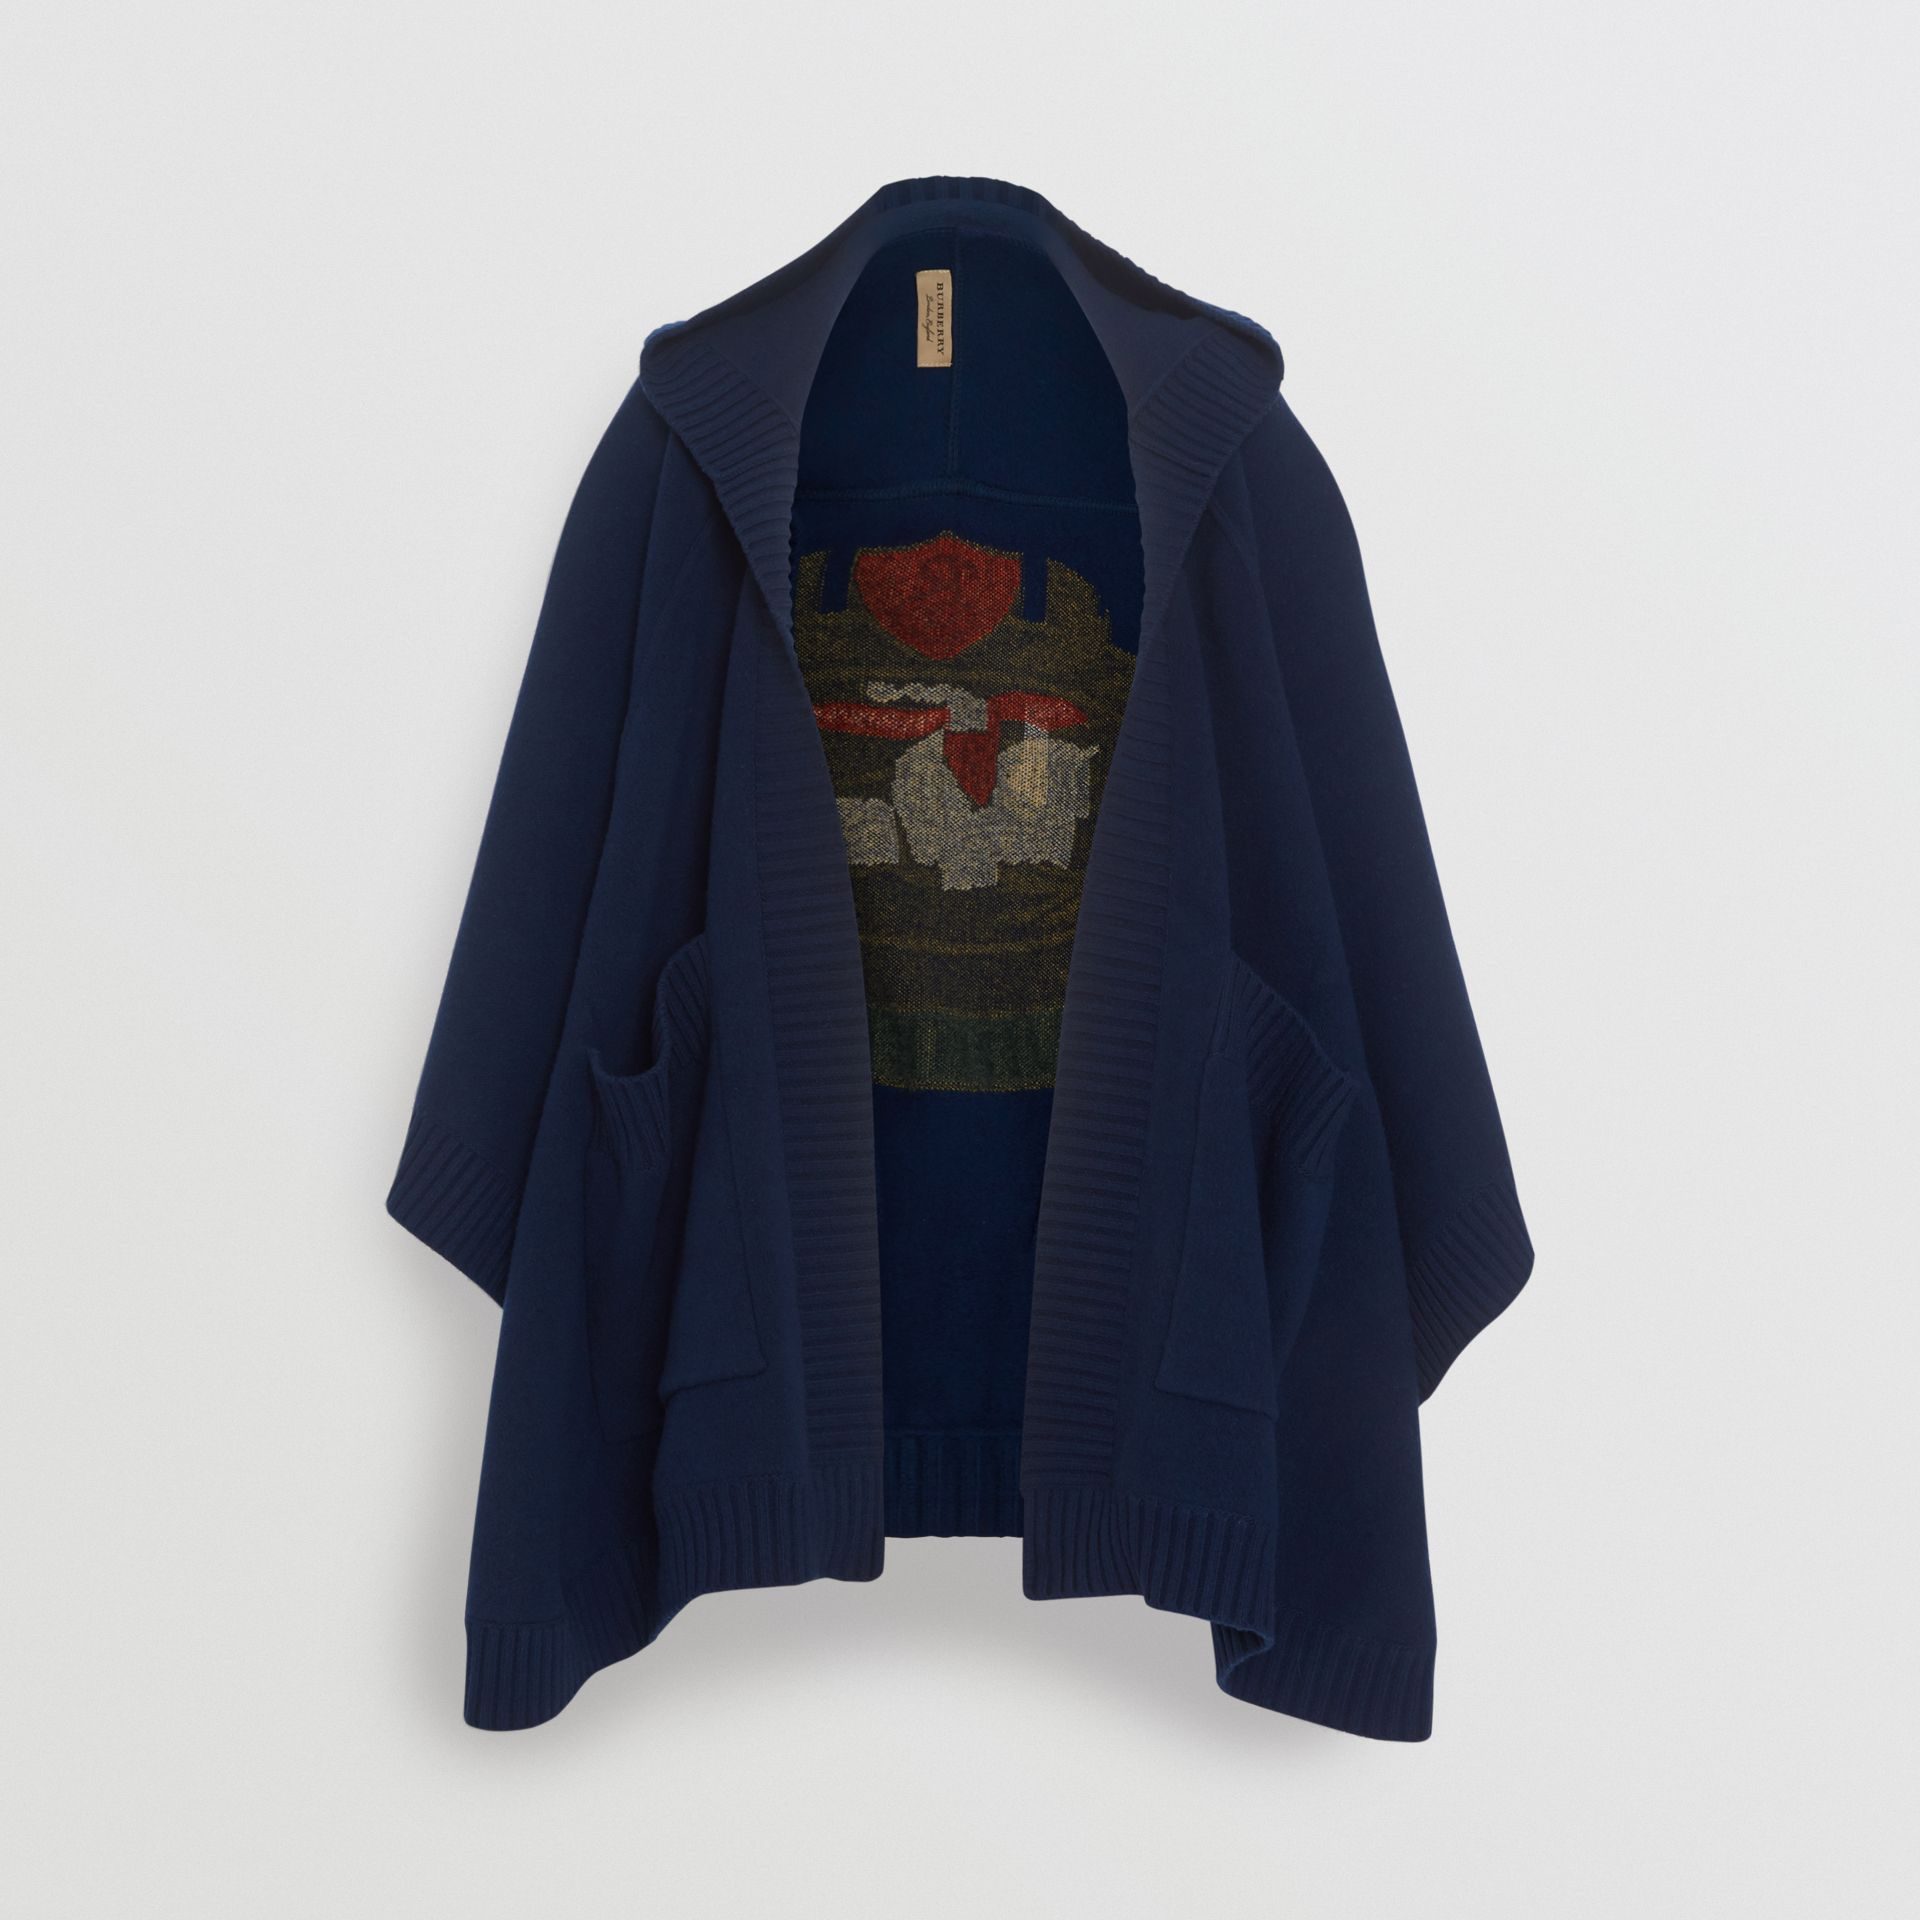 Crest Jacquard Wool Blend Hooded Cape in Navy - Women | Burberry - gallery image 3